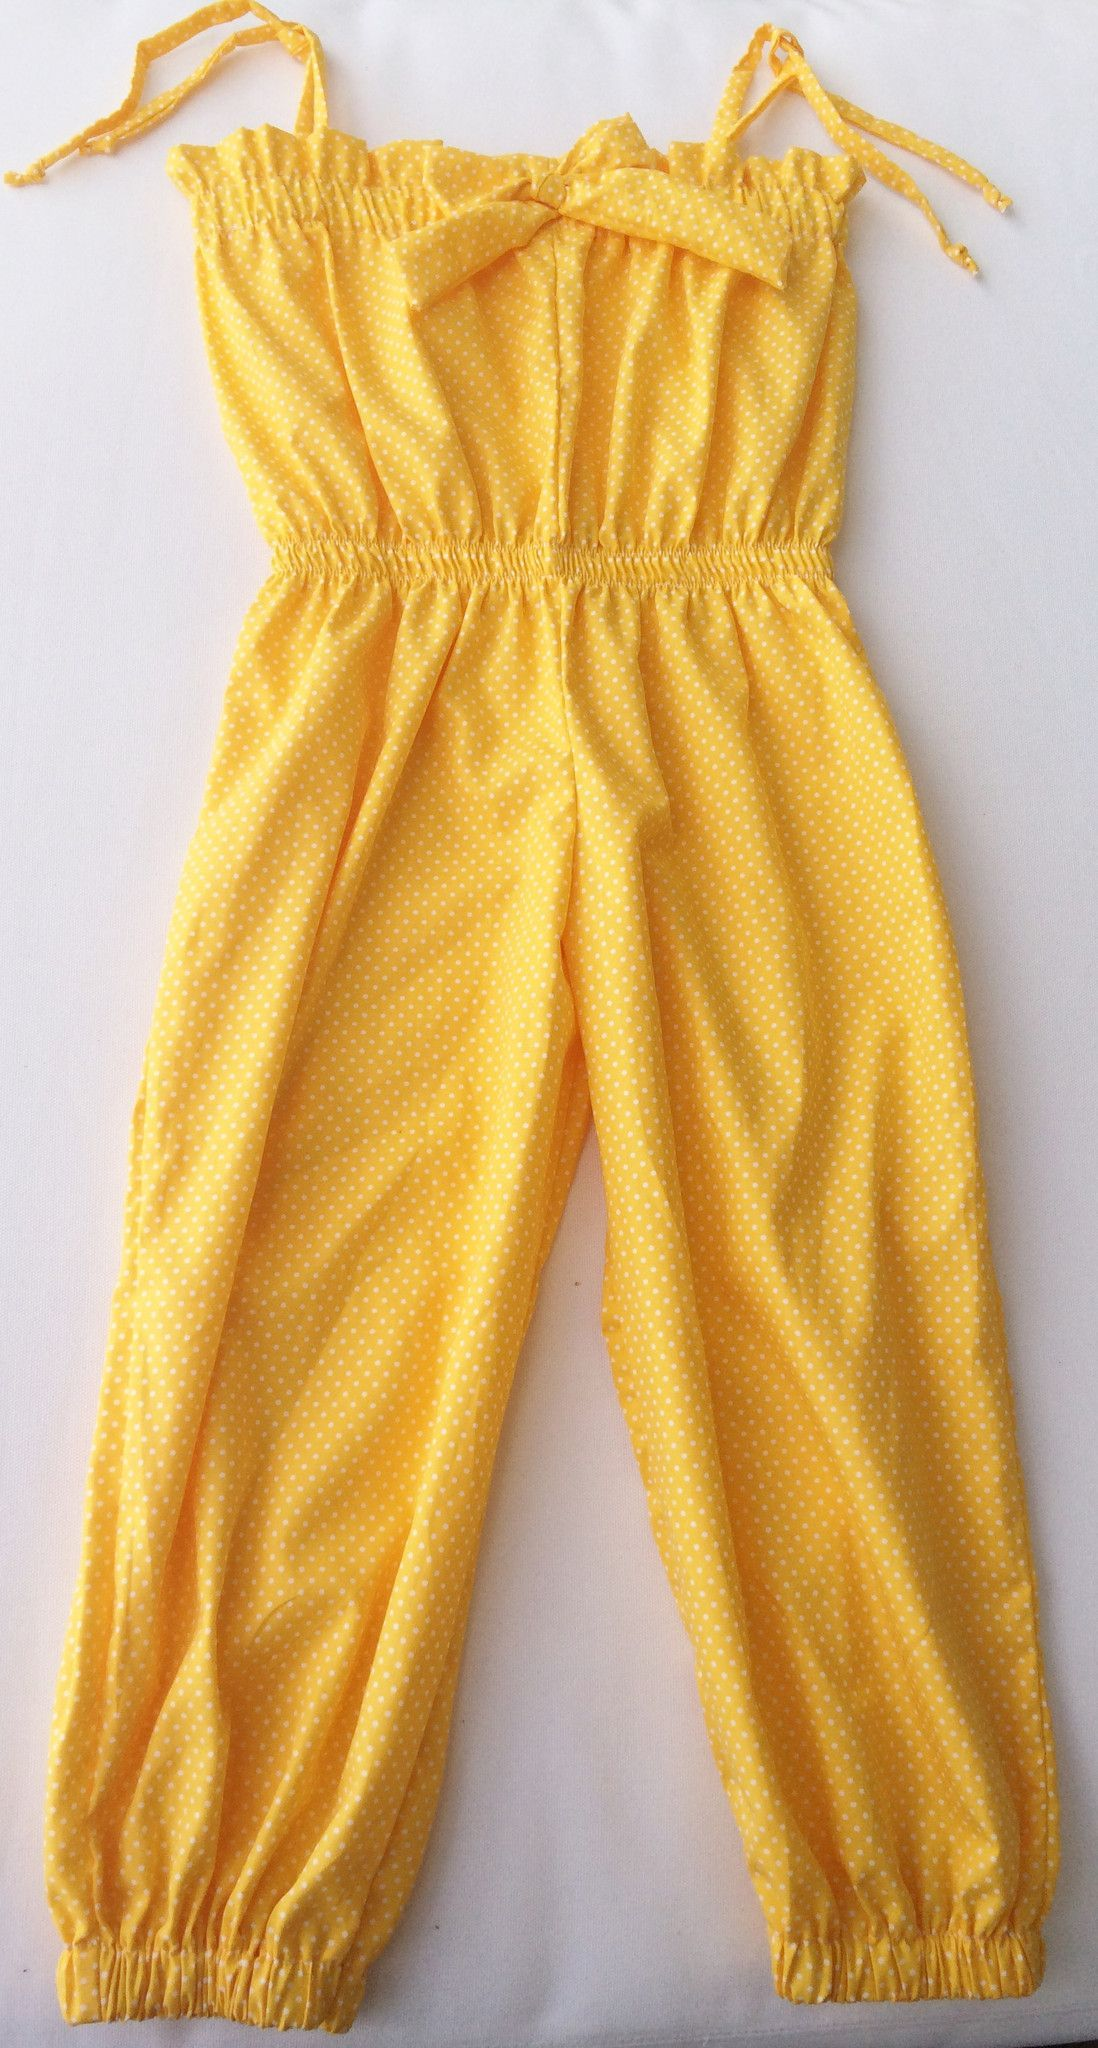 5759d913c7a2a Girls Jumper, Overall, Cotton Yellow Jumpsuit by ABY'S KIDS | girls ...